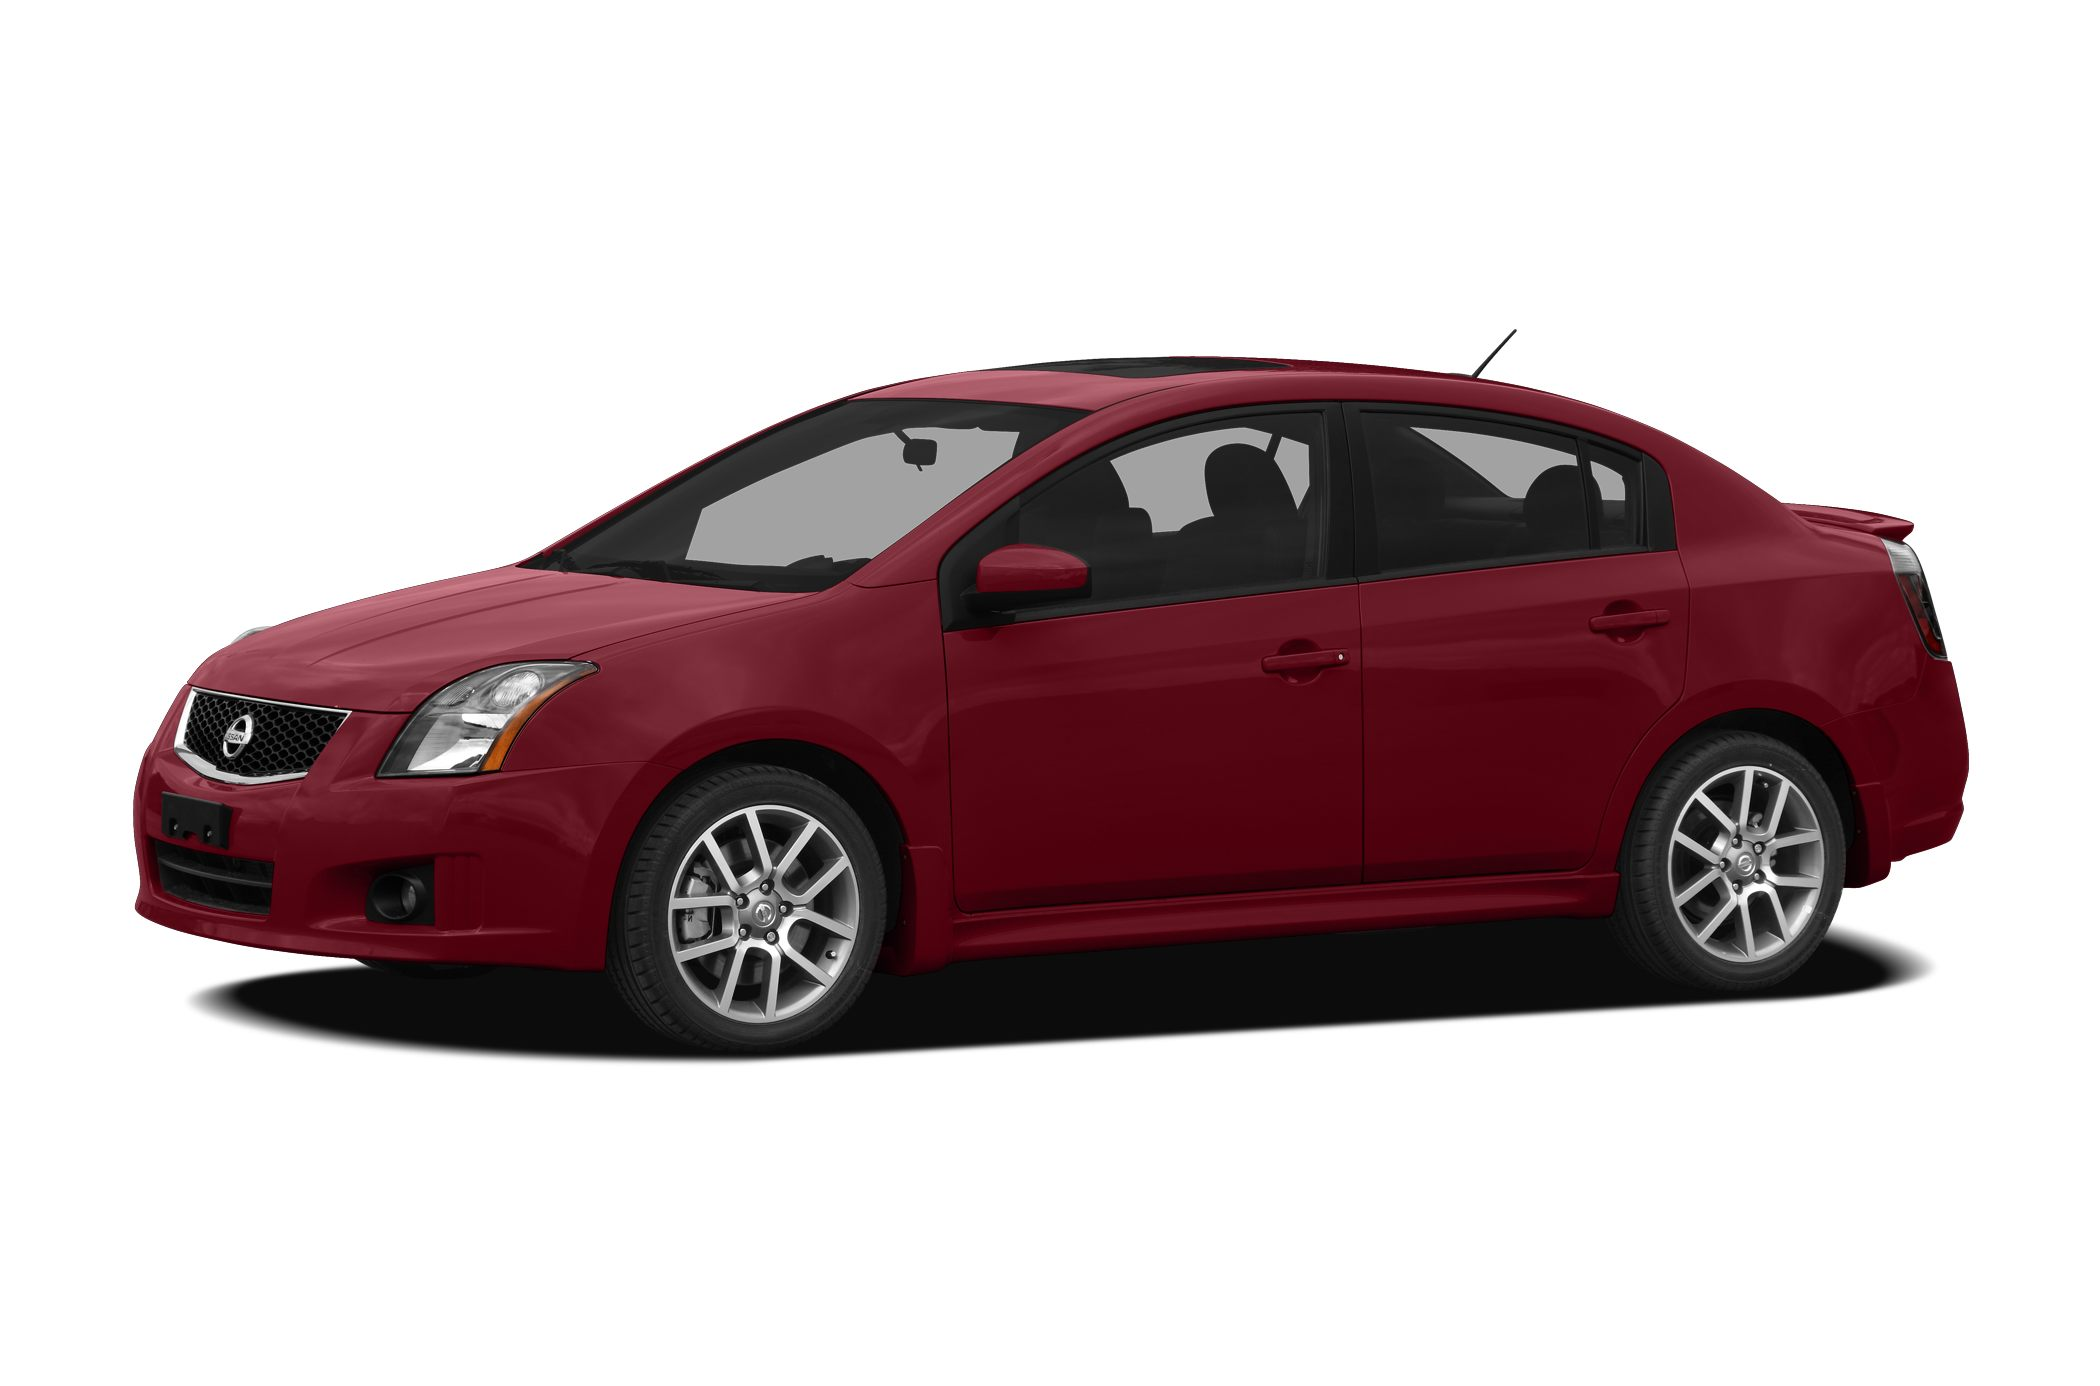 2008 Nissan Sentra